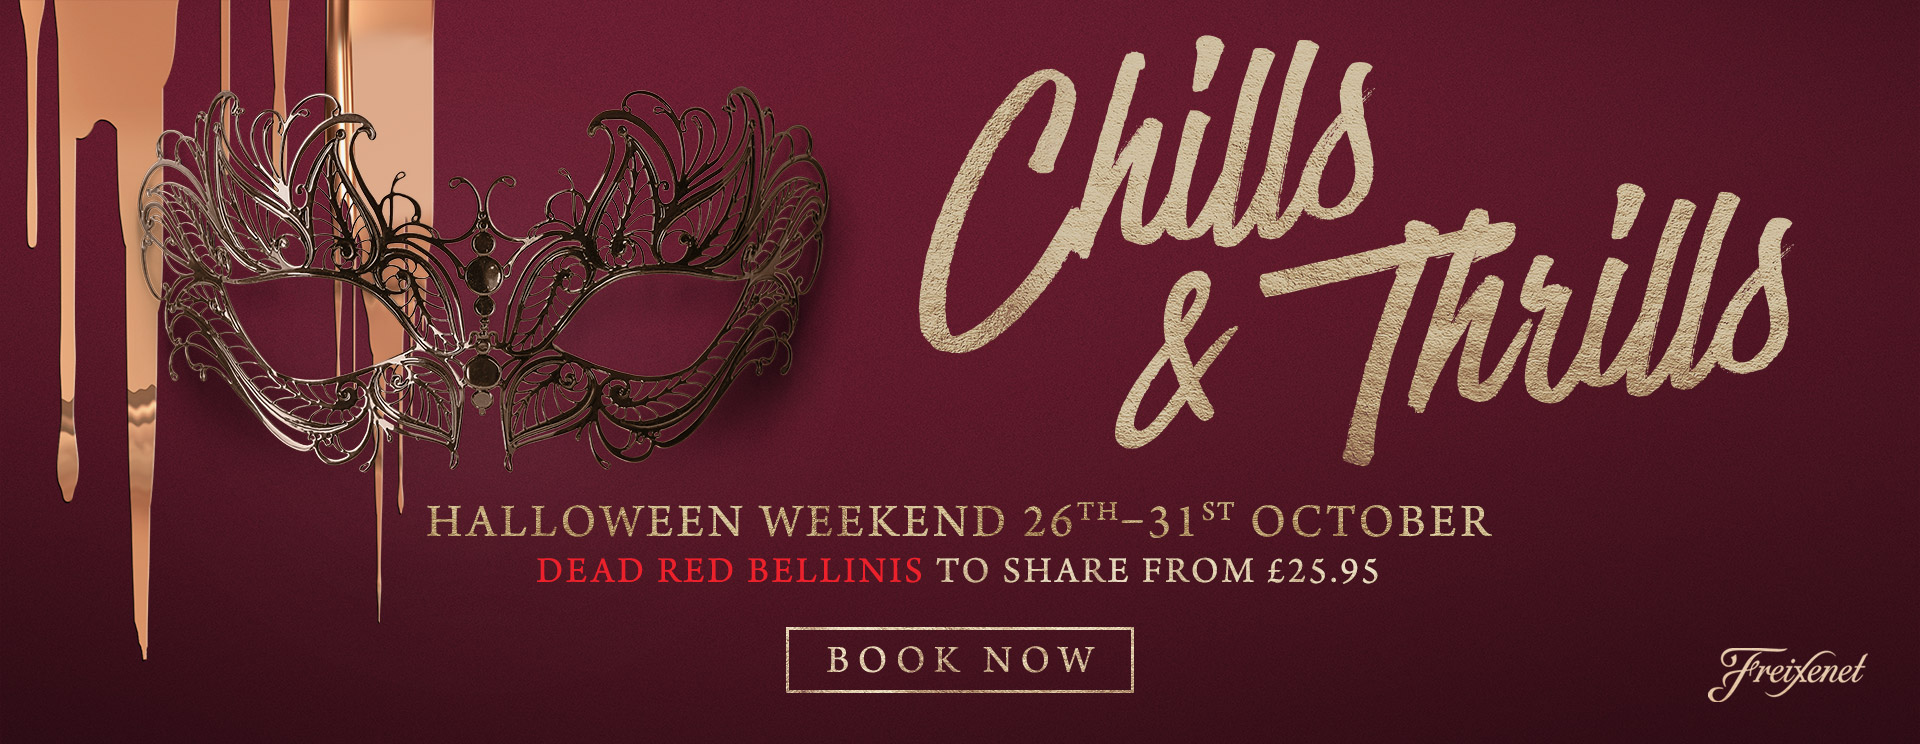 Chills & Thrills this Halloween at The Albany